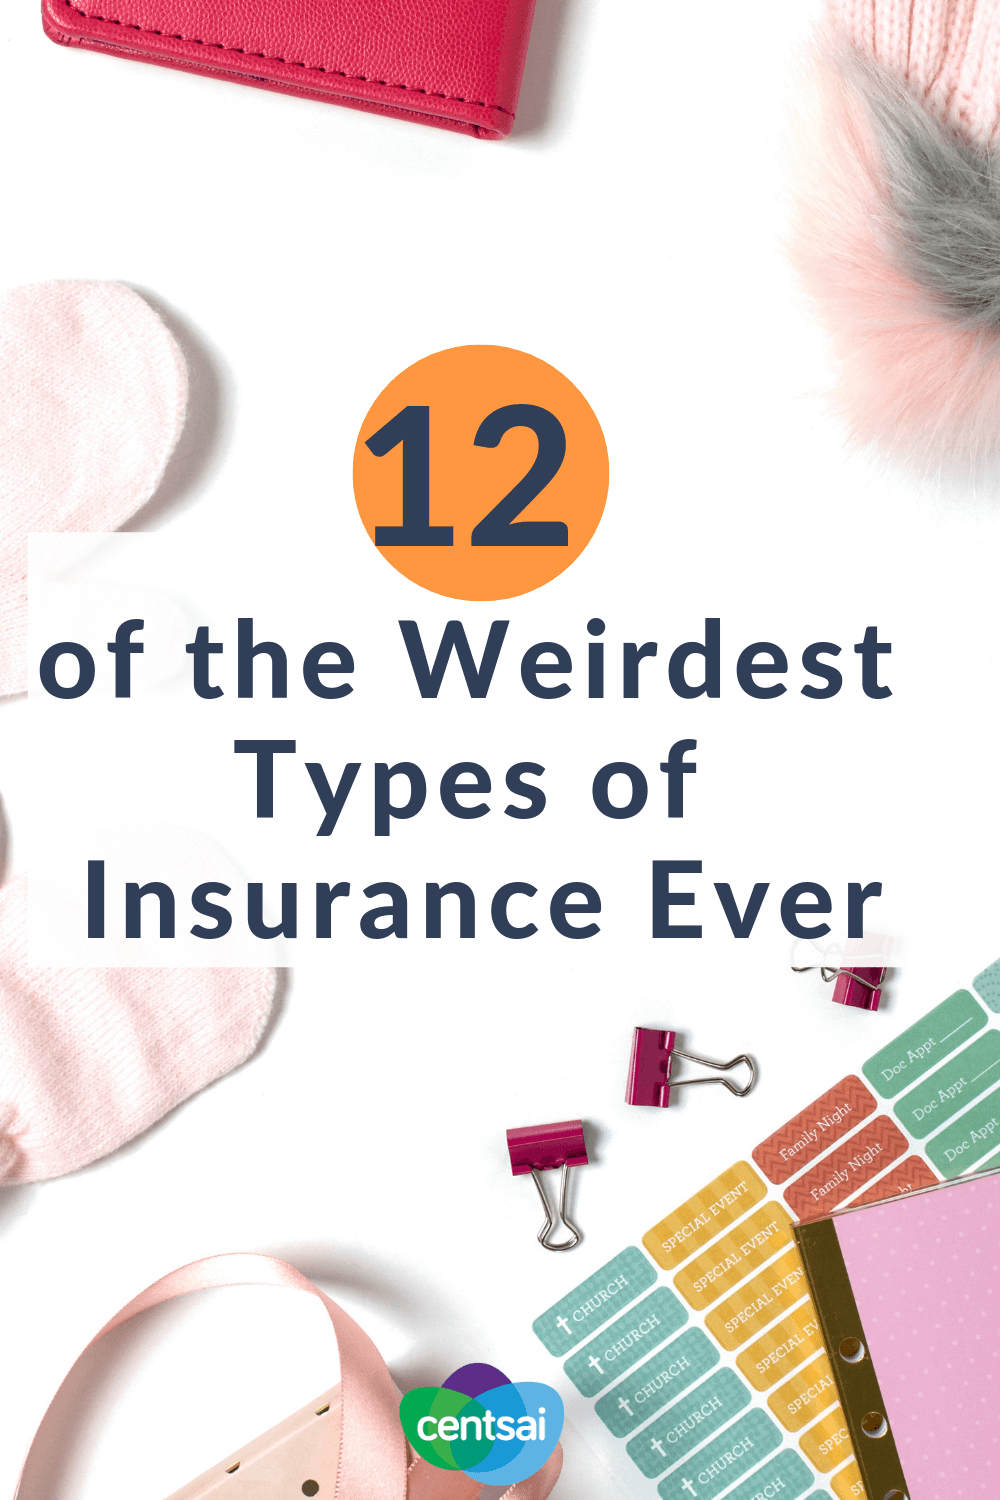 12 of the Weirdest Types of Insurance Ever. Did you know that fantasy-football insurance is a thing? No joke — it exists. Learn all about this and other weird types of insurance. #insurance